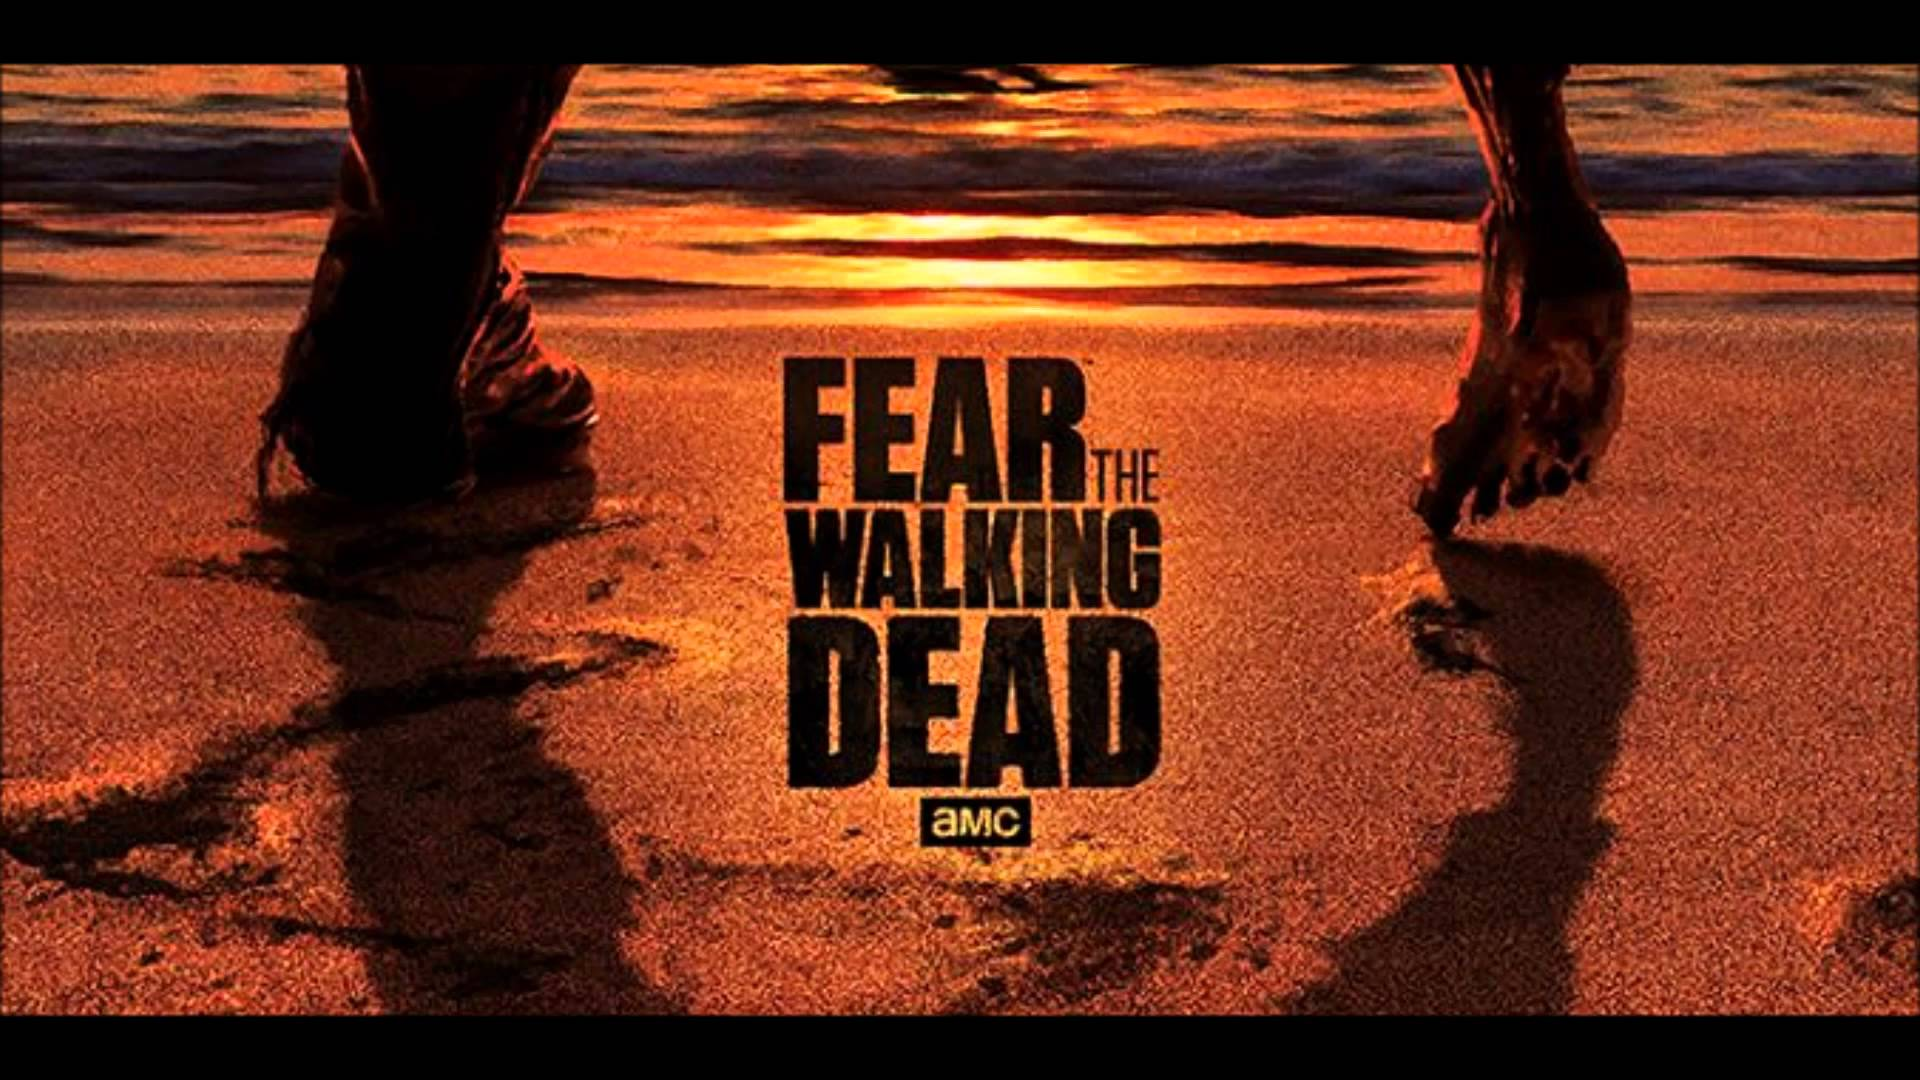 Fear The Walking Dead 2015 Wallpapers 77 Wallpapers